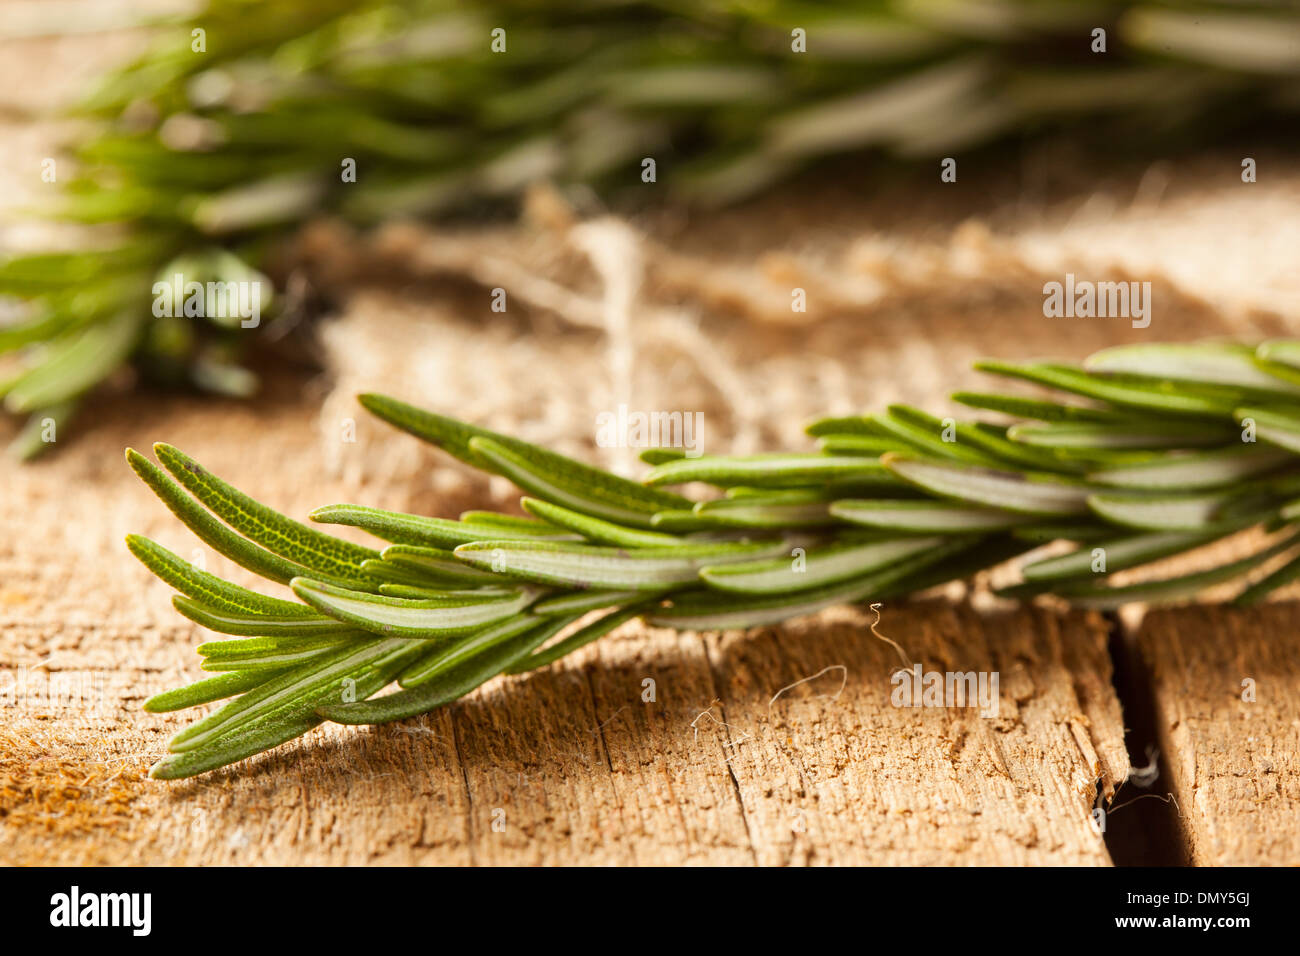 Fresh Organic Green Rosemary Sprig on a Background - Stock Image